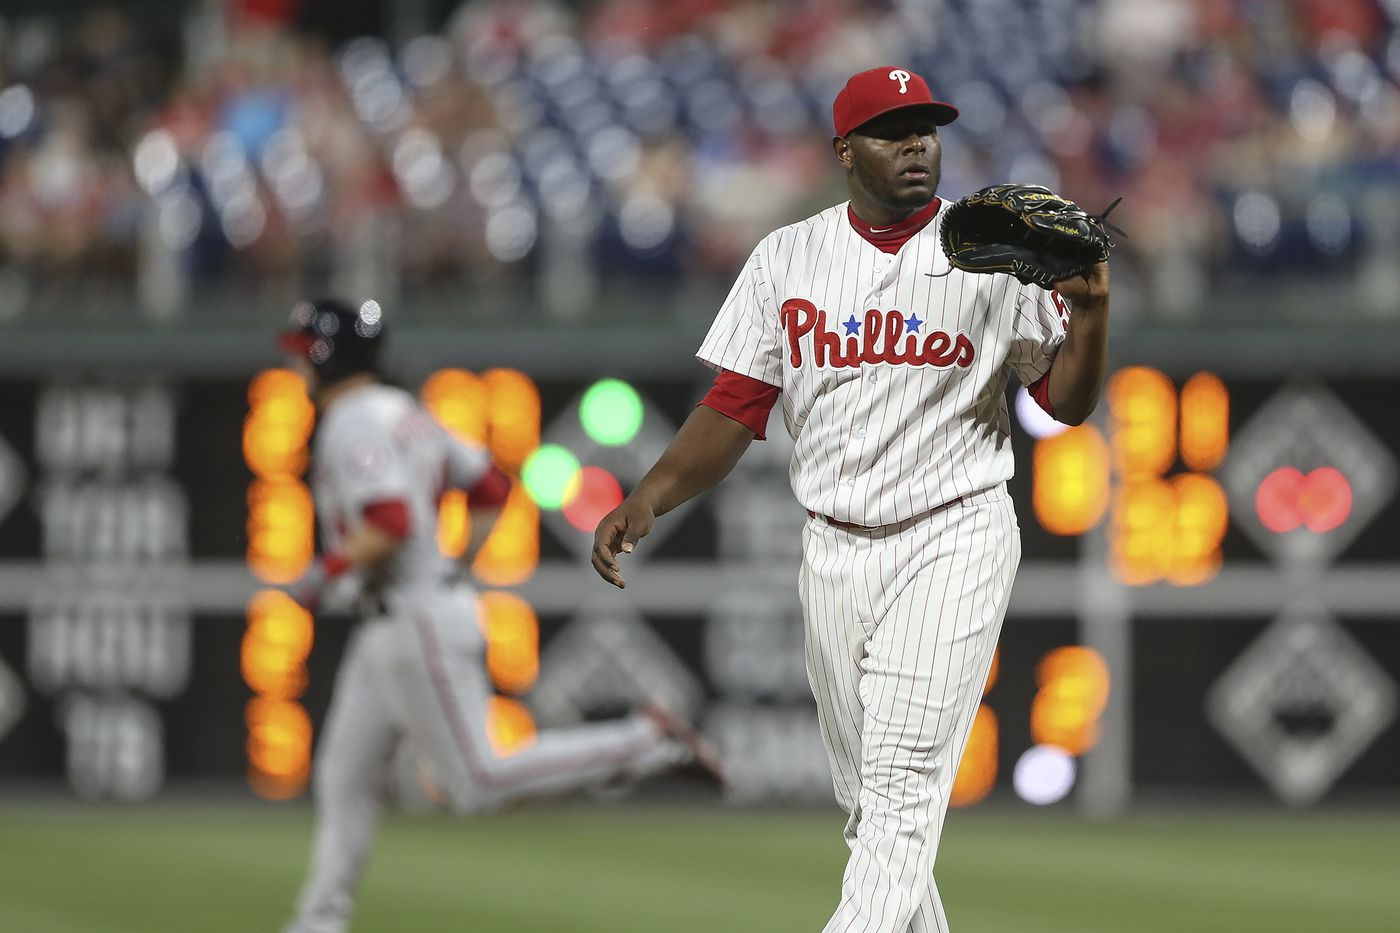 Phillies send Hector Neris back to minors after 'shell-shock' performance against Nationals